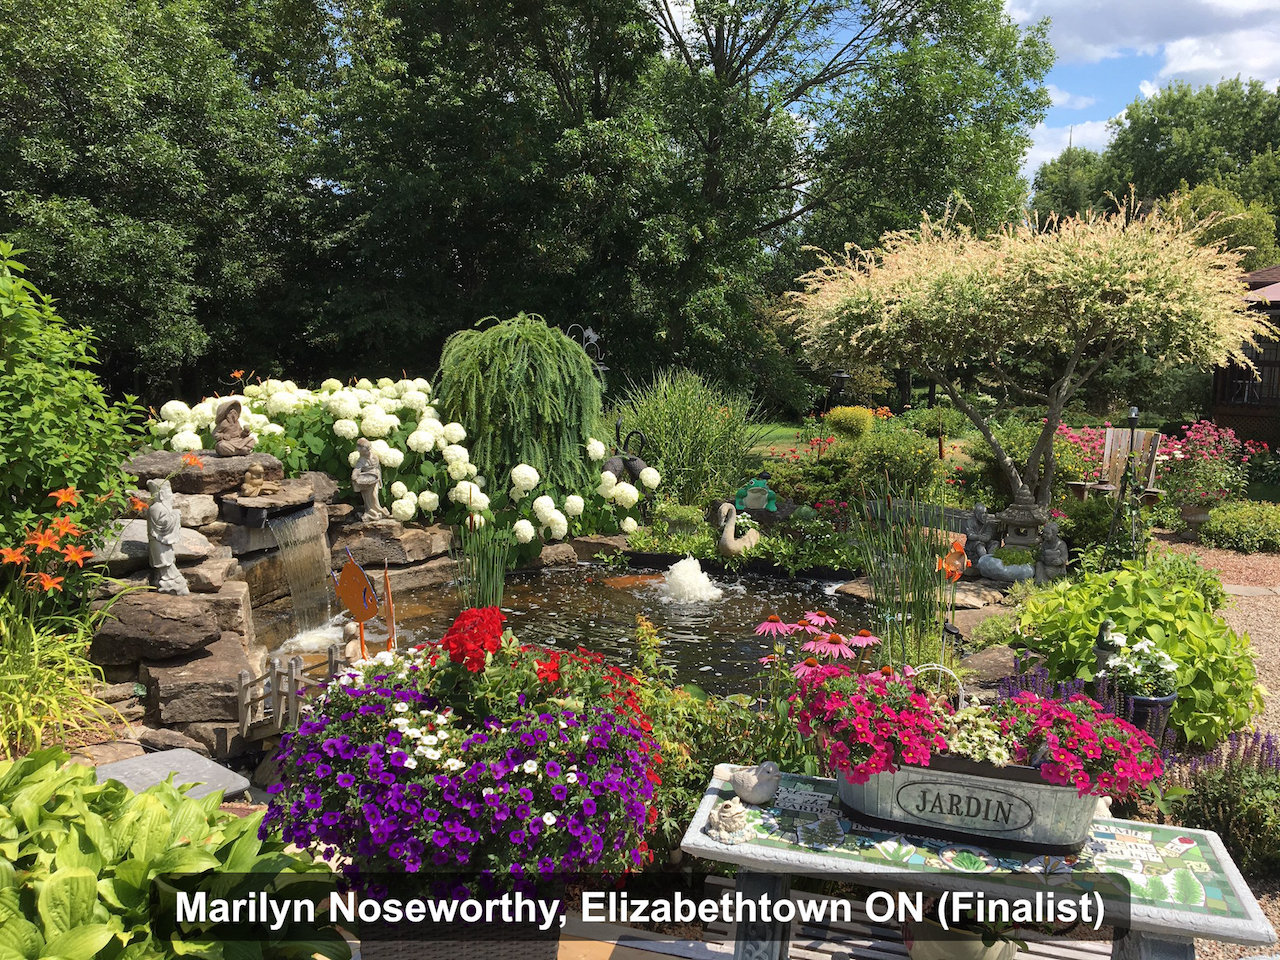 Finalist - Marilyn Noseworthy, Elizabethtown ON